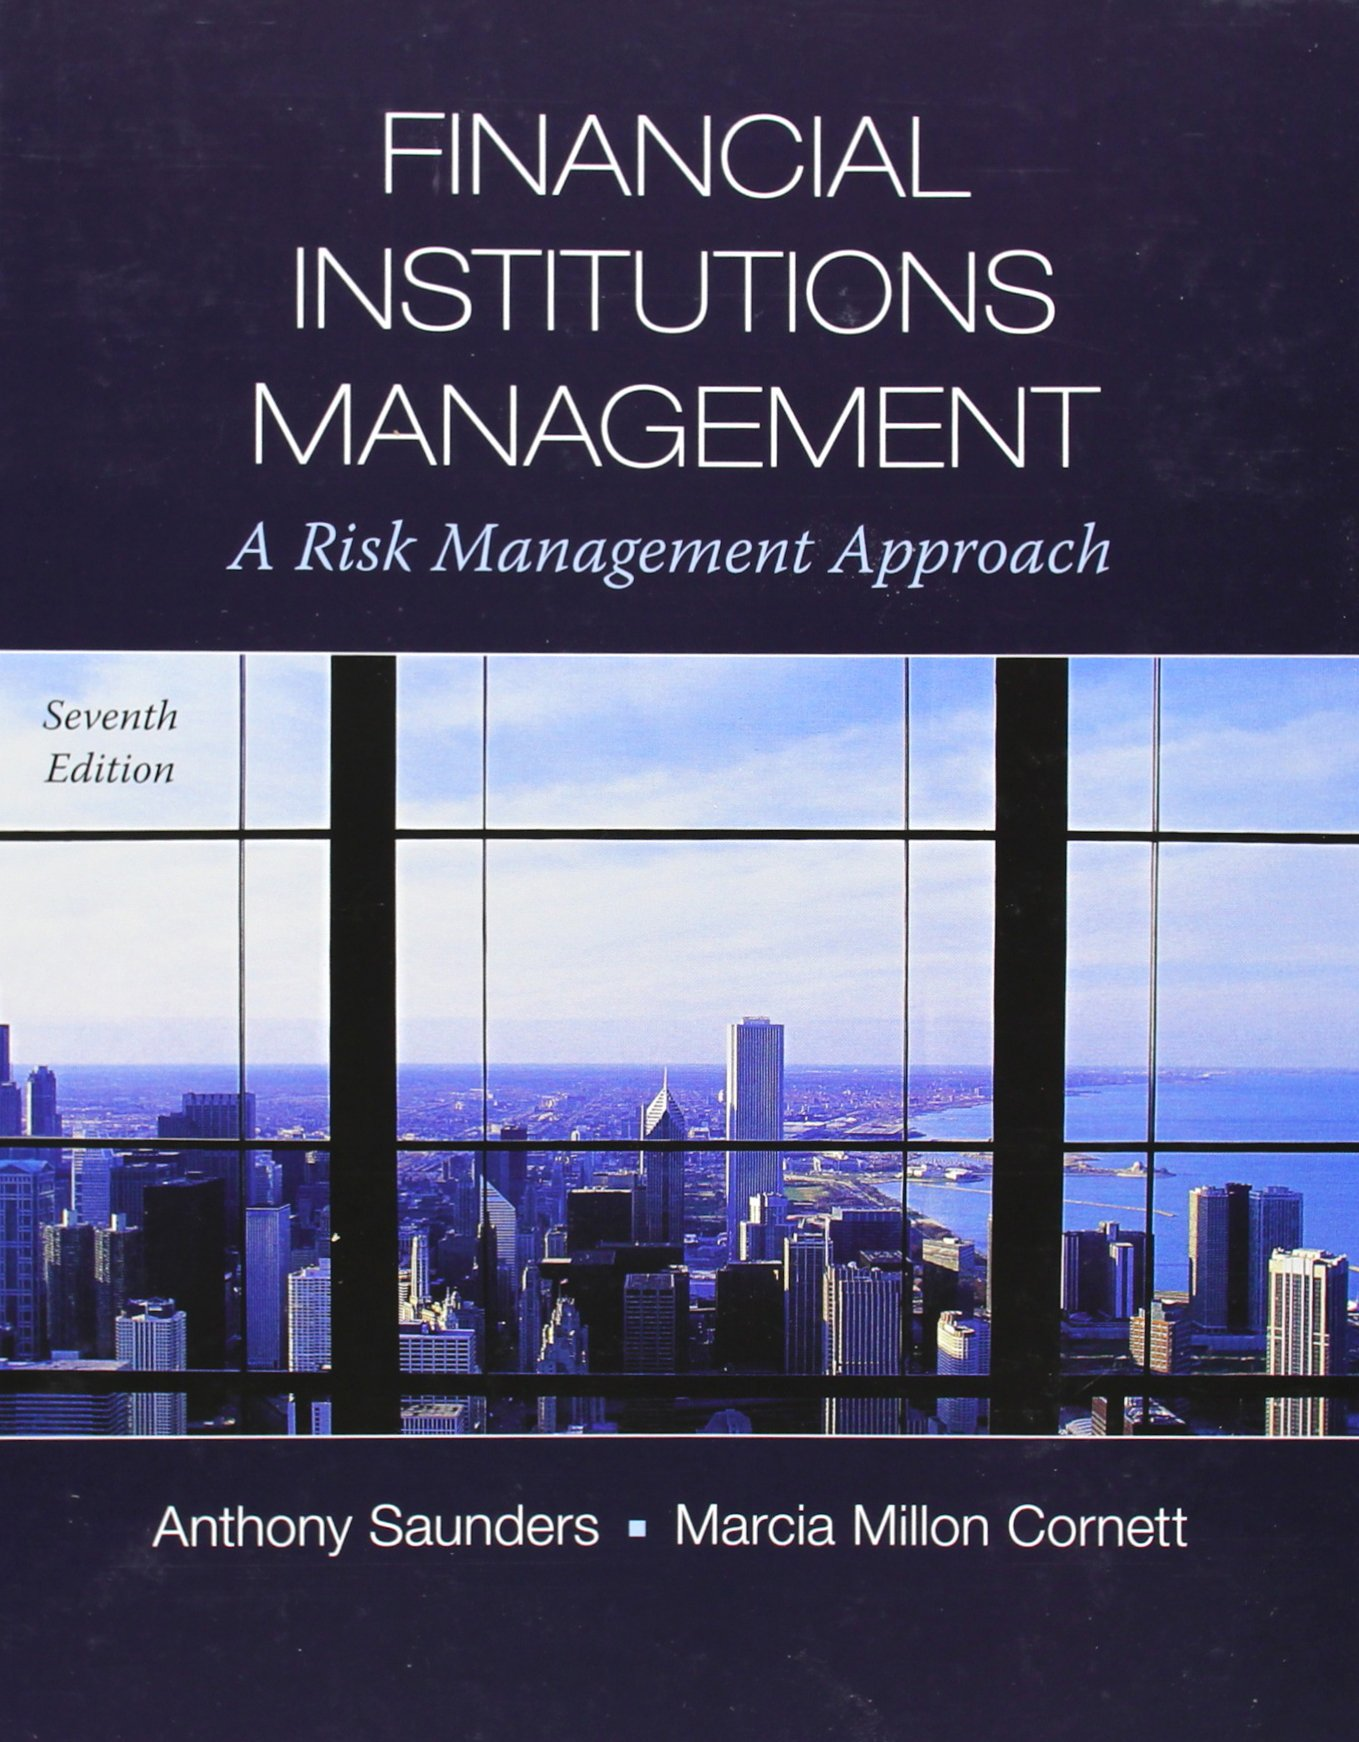 Financial Institutions Management A Risk Management Approach 7th Edition By Saunders, Cornett - Test Bank